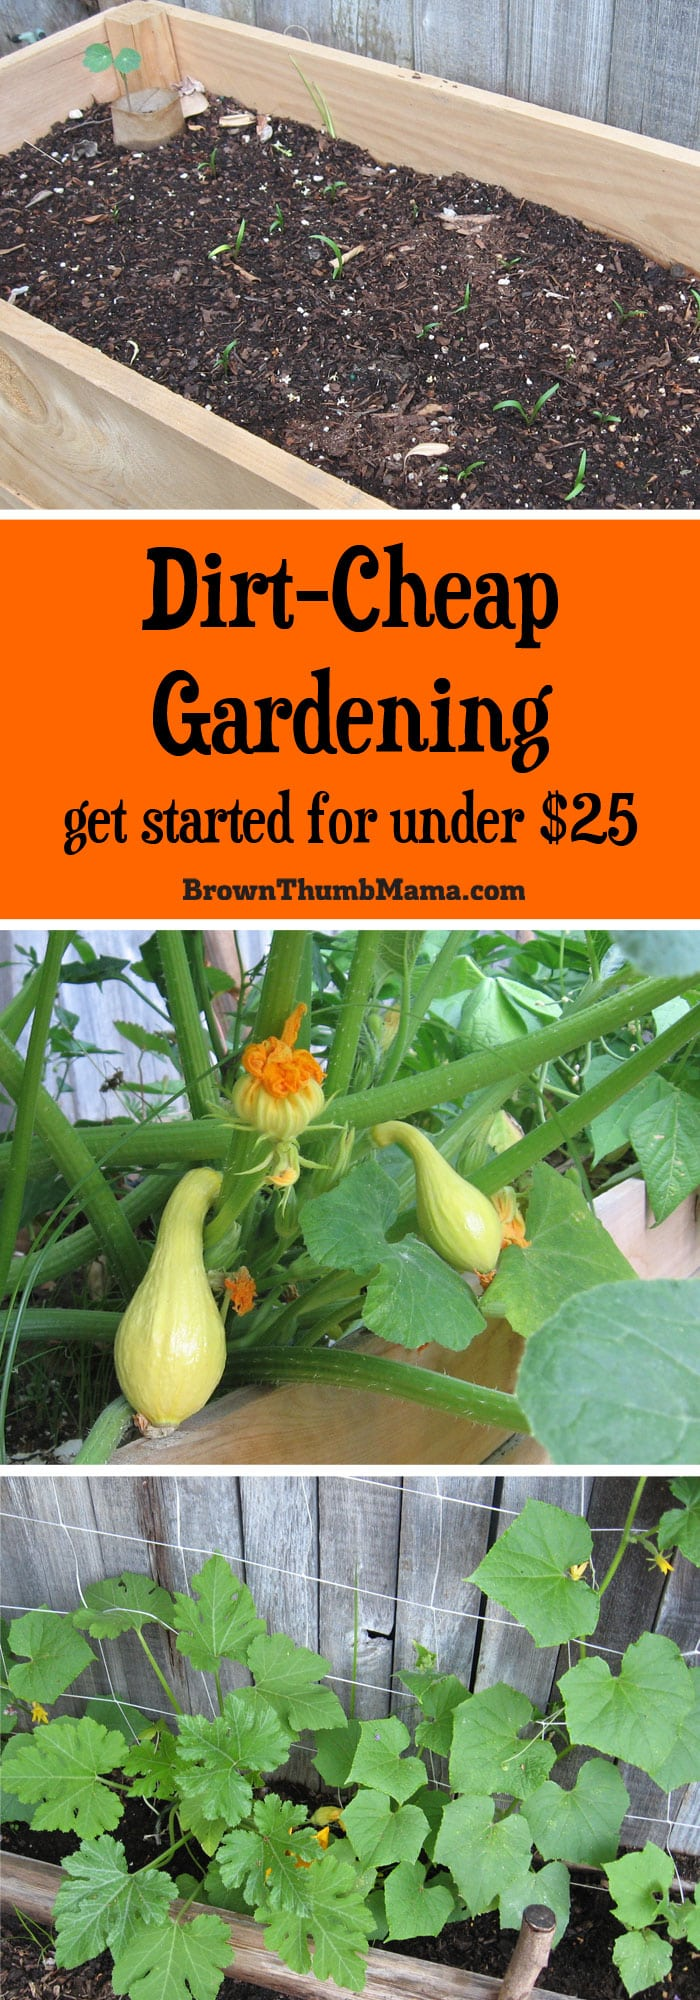 Want to grow a cheap vegetable garden? For under $25, you can build a raised bed garden WITH plants and grow enough yummy food to make your money back.